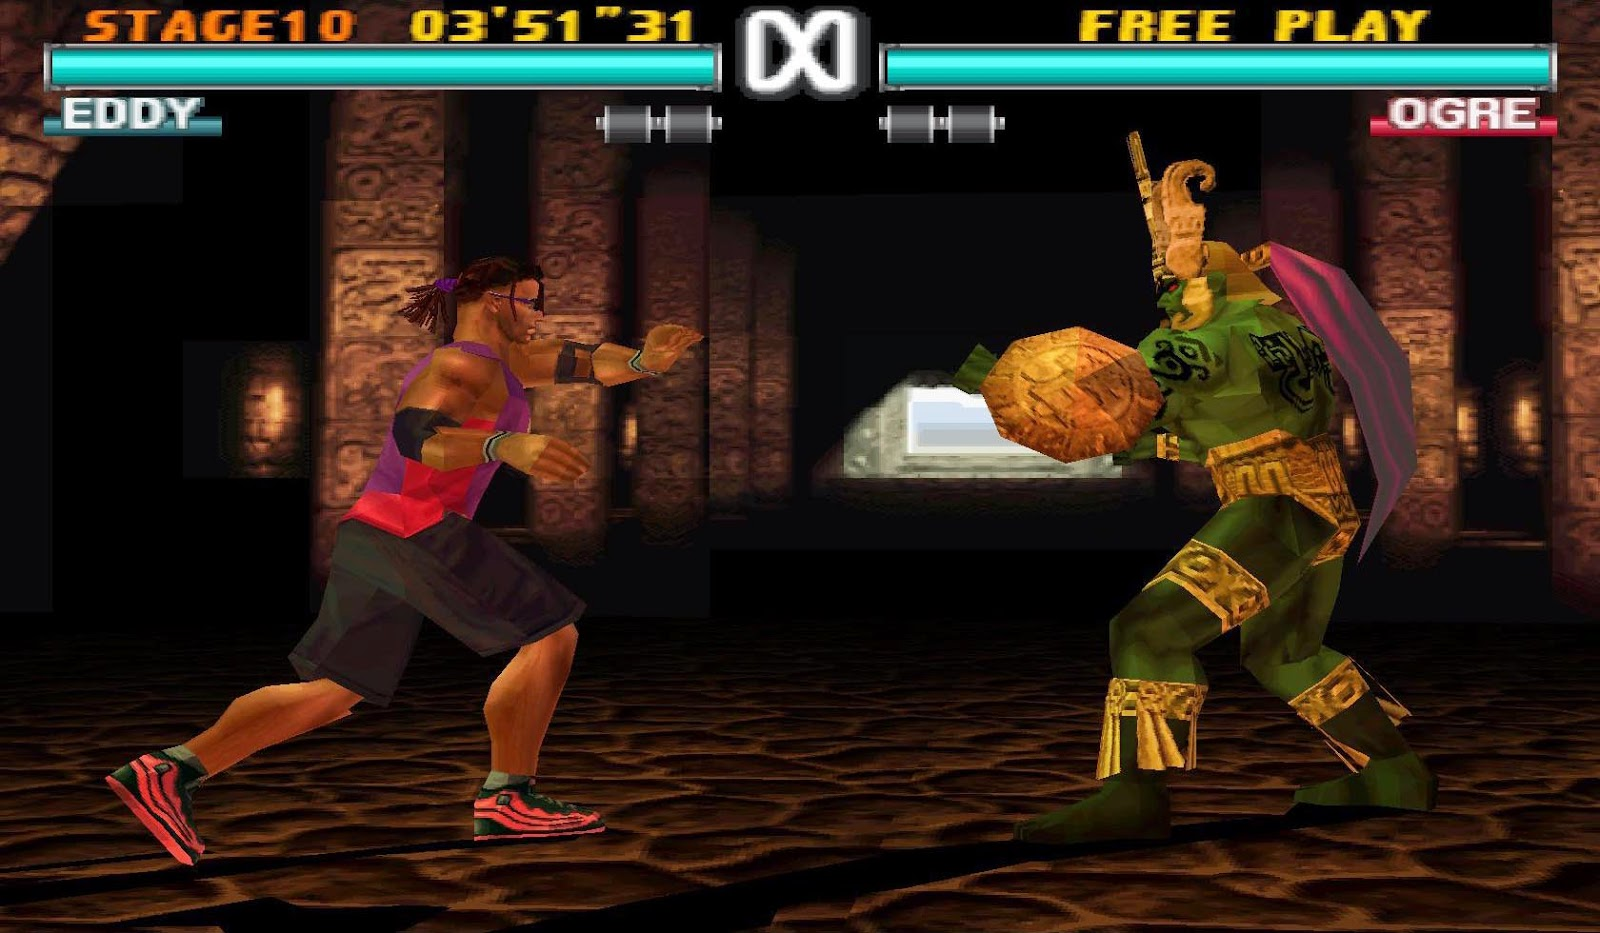 tekken 3 playstation game download